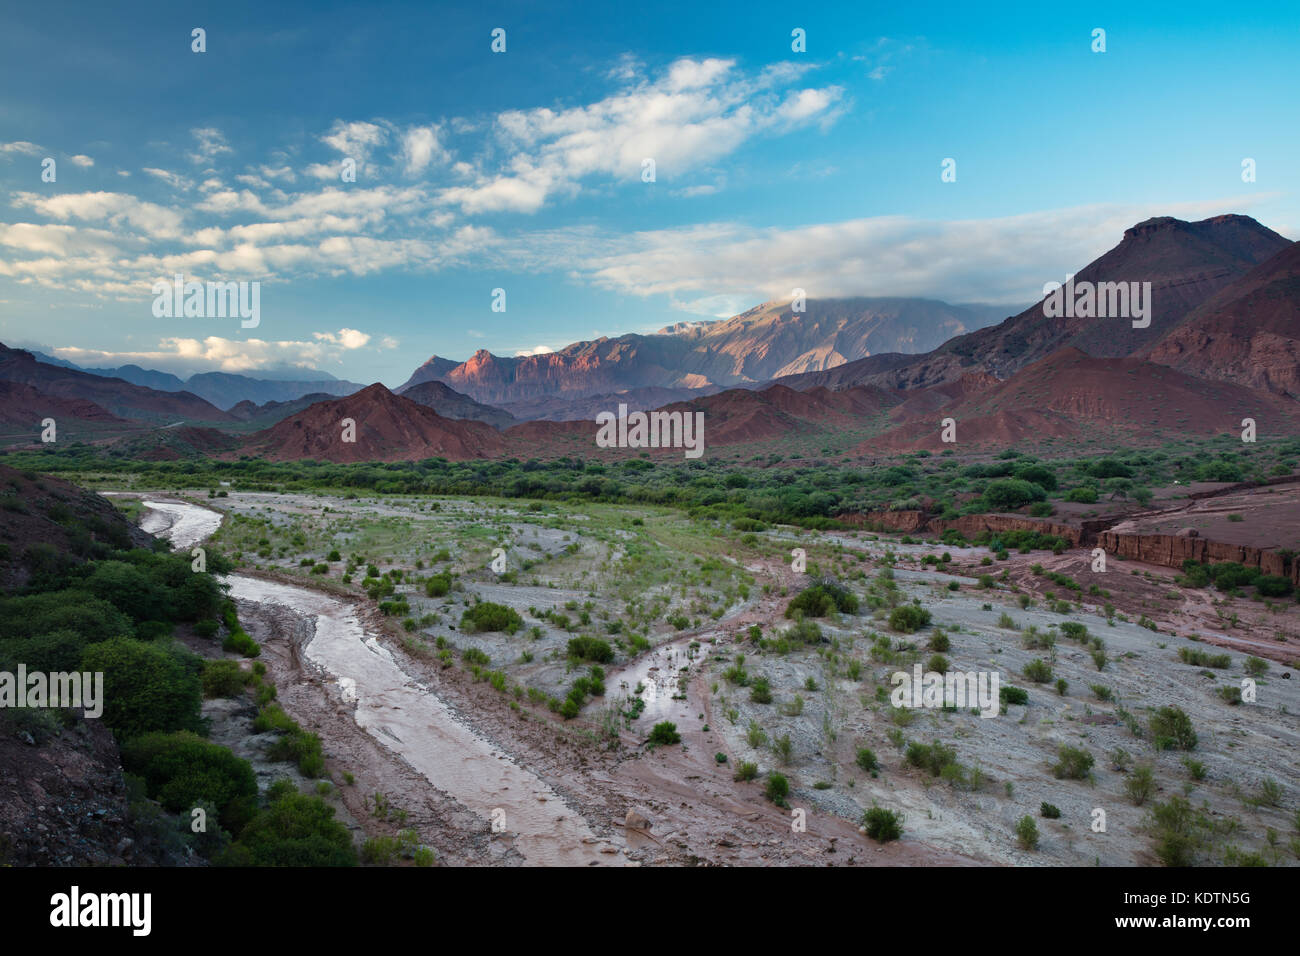 The Quebrada de la Conches, Valles Calchaquies, Salta Province, Argentina - Stock Image